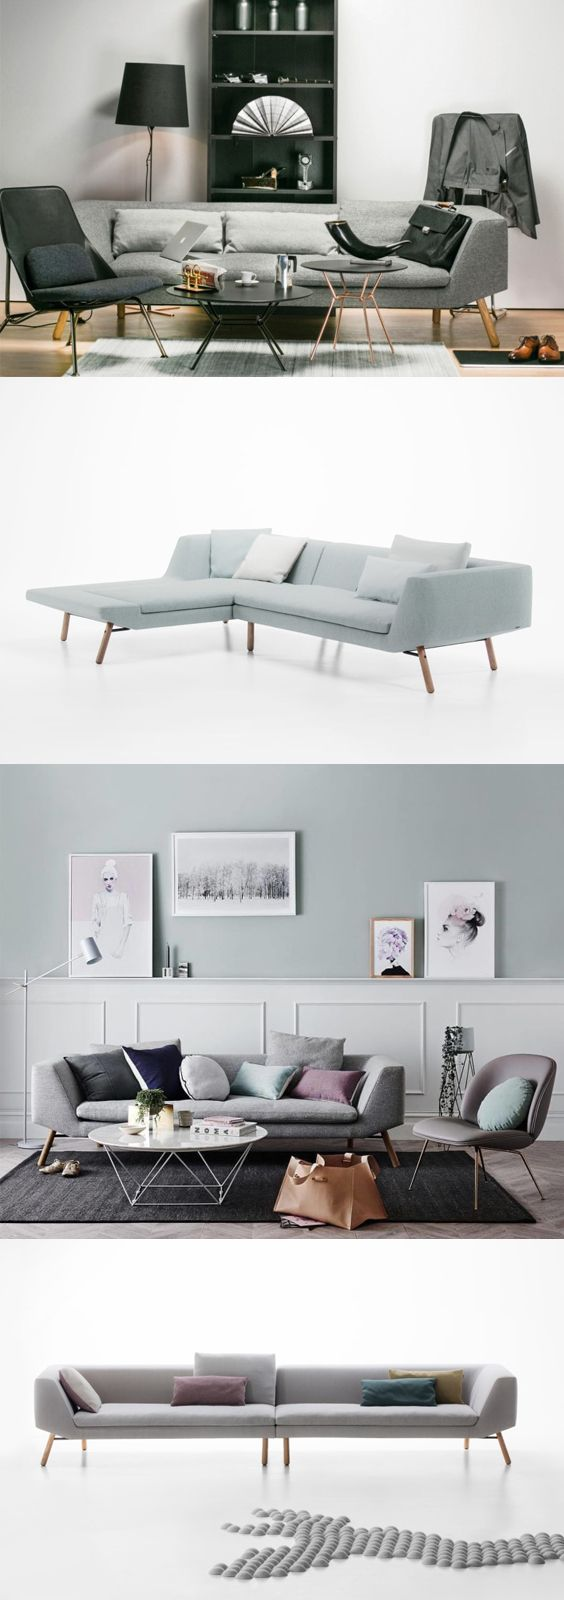 Sofa Modern Skandinavisch Prostoria Sofa Combine In 2019 You Dream Awake Sofa